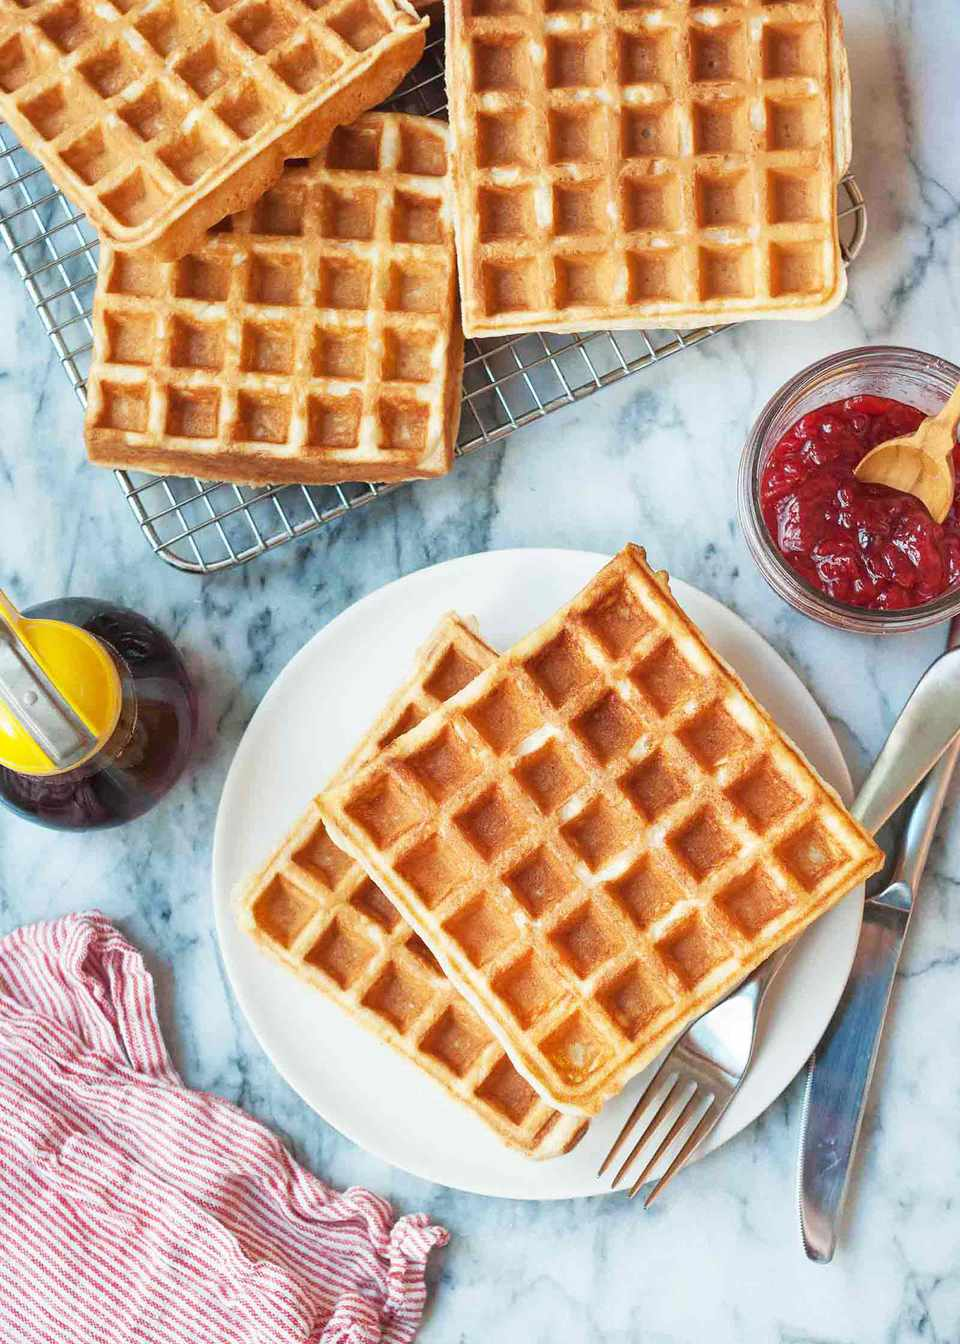 Buttermilk waffle recipe on a round plate with extra waffles on a cooling rack nearby